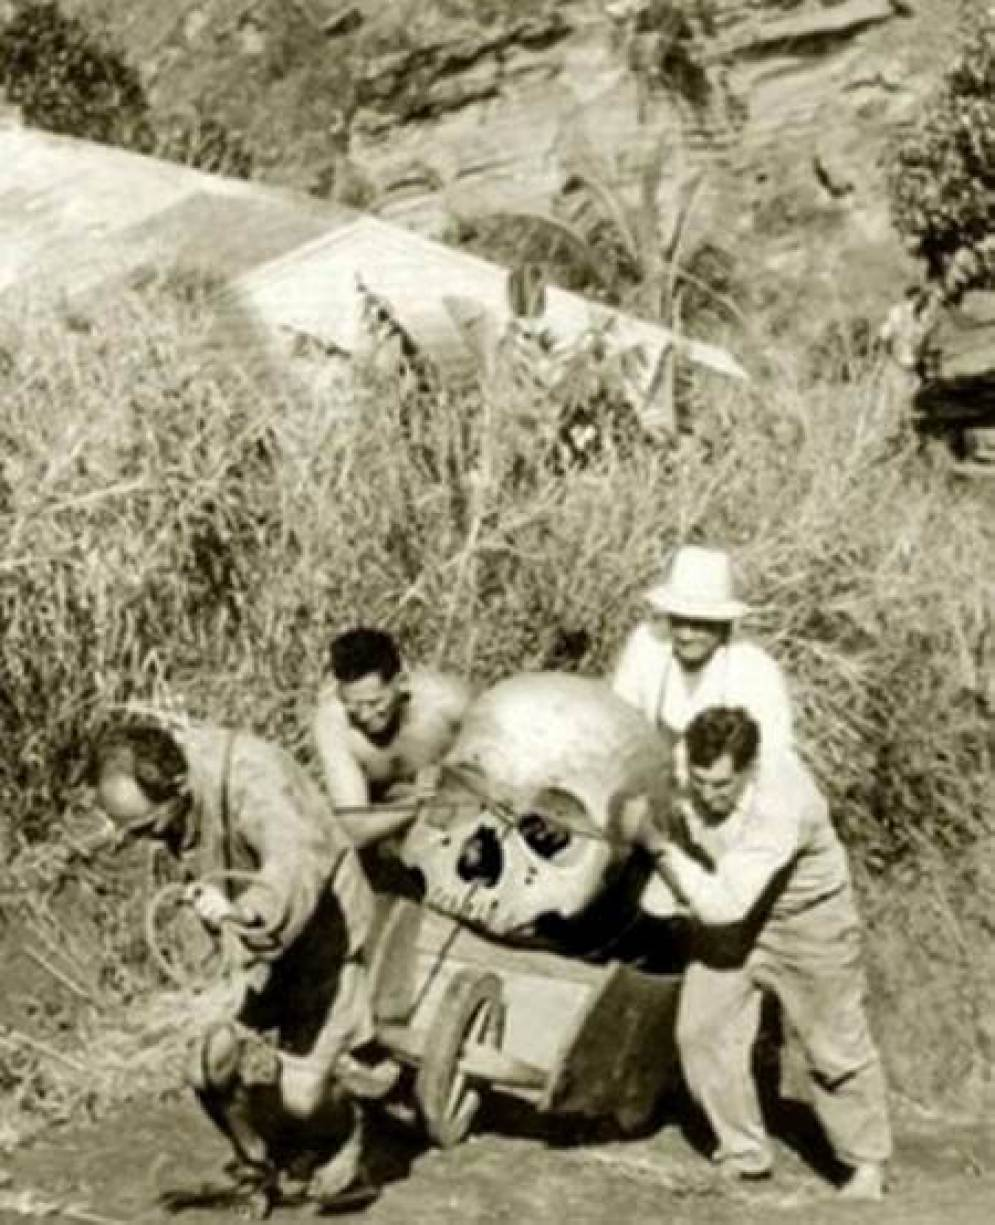 Giant-Skull-Pitcairn Island, New Zealand in1934